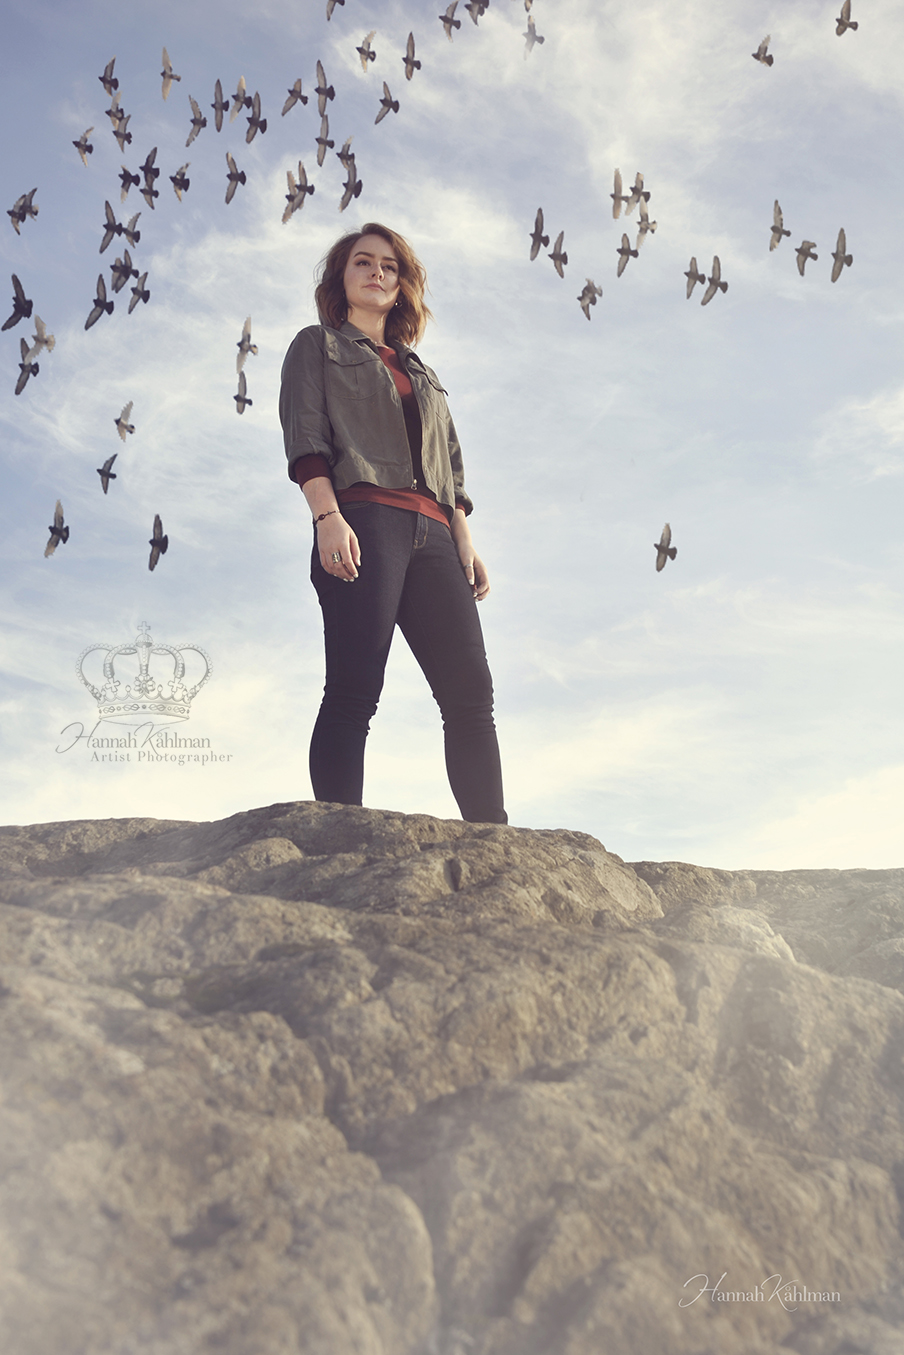 Creative_conceptual_hs_senior_photo_for_